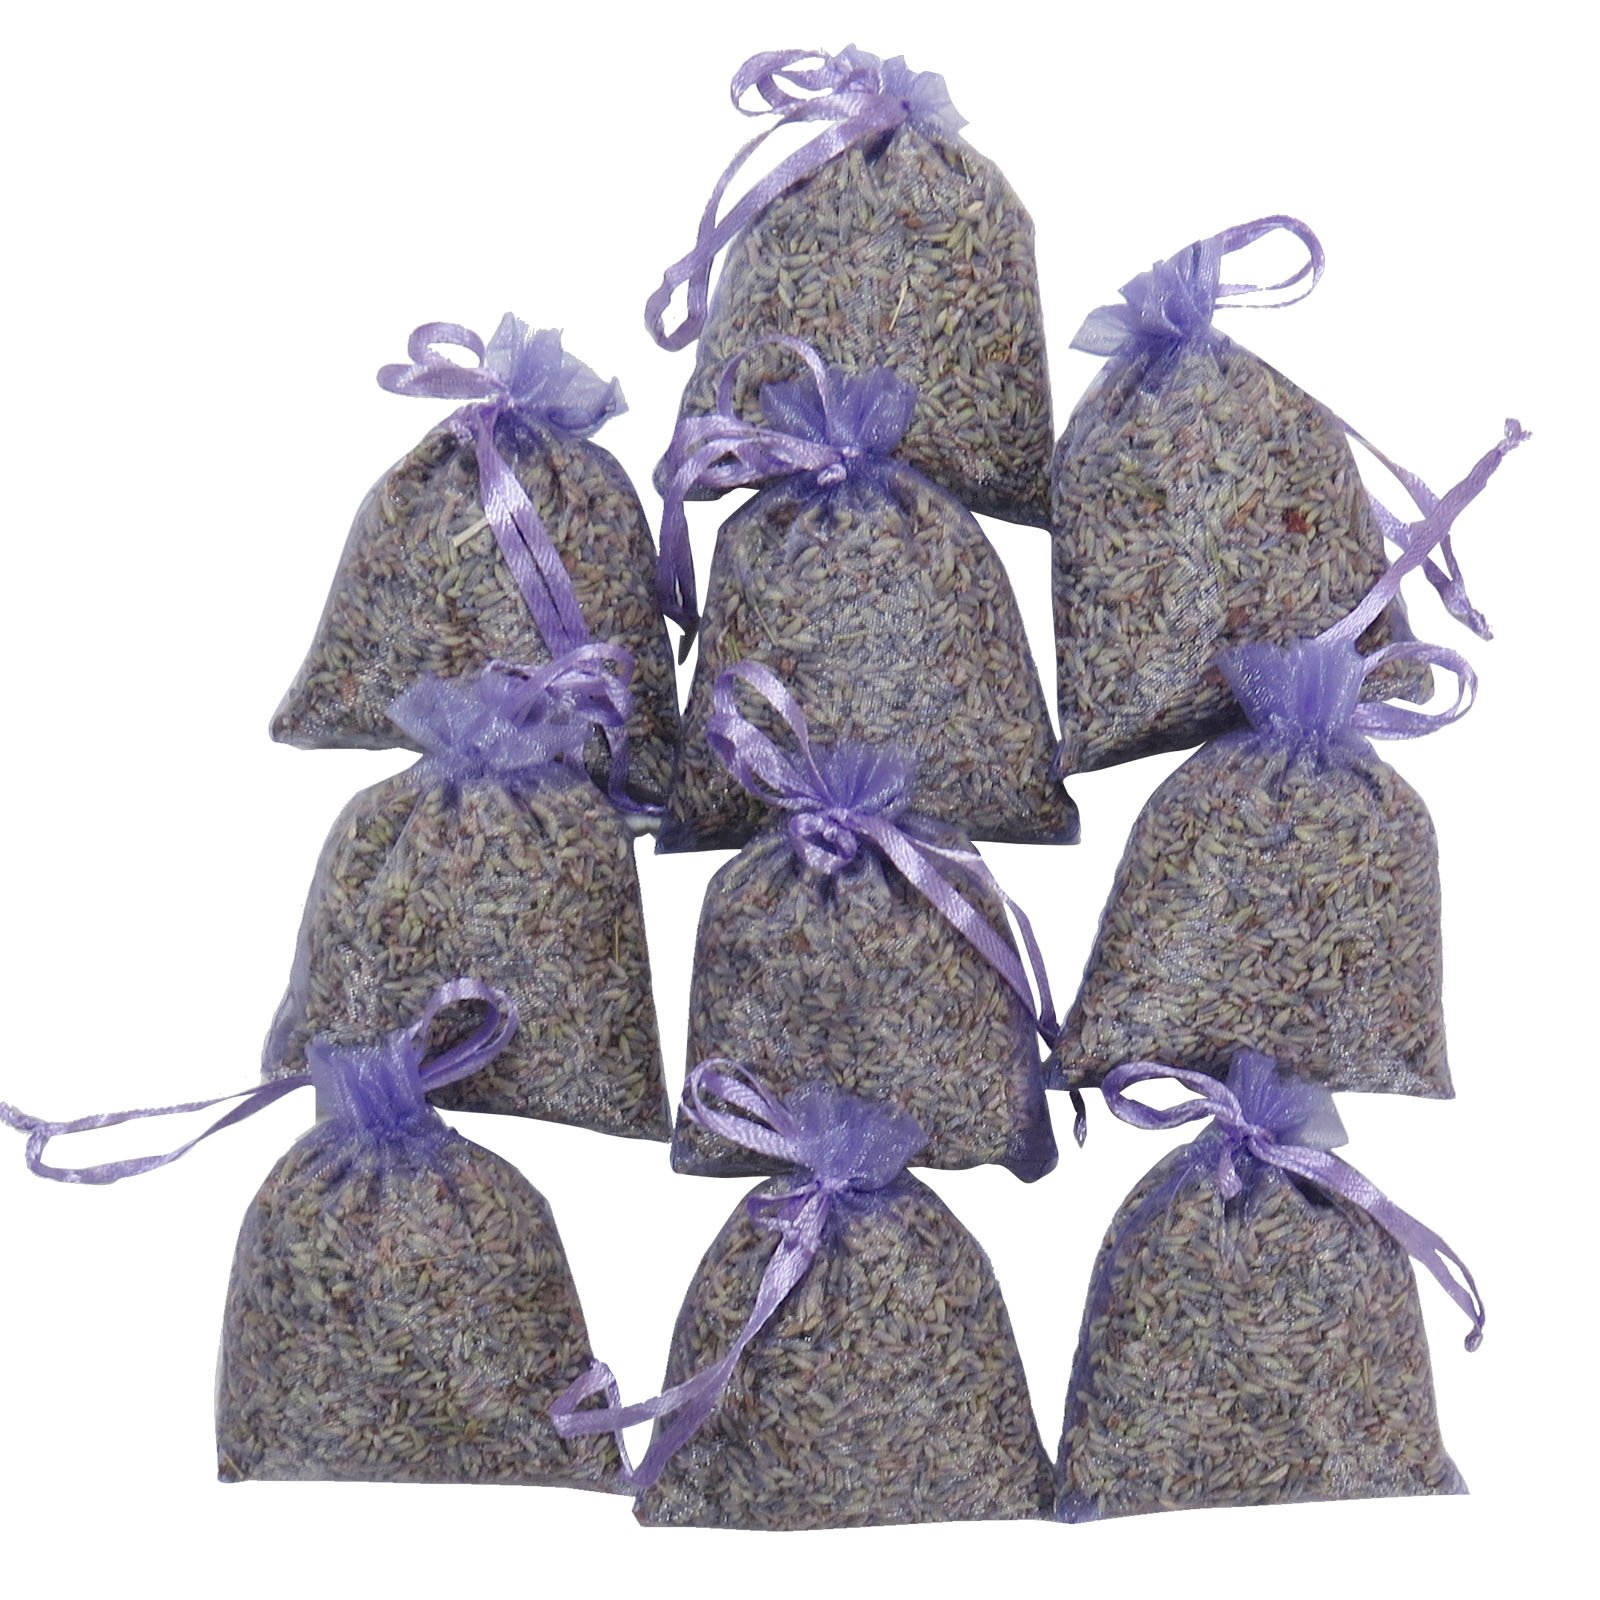 RakrisaSupplies Purple Bags Pack of 15 | Natural Deodorizer, Moth Repellent, Highest Fragrance Lavender Scent Sachets | LS-001 by RakrisaSupplies